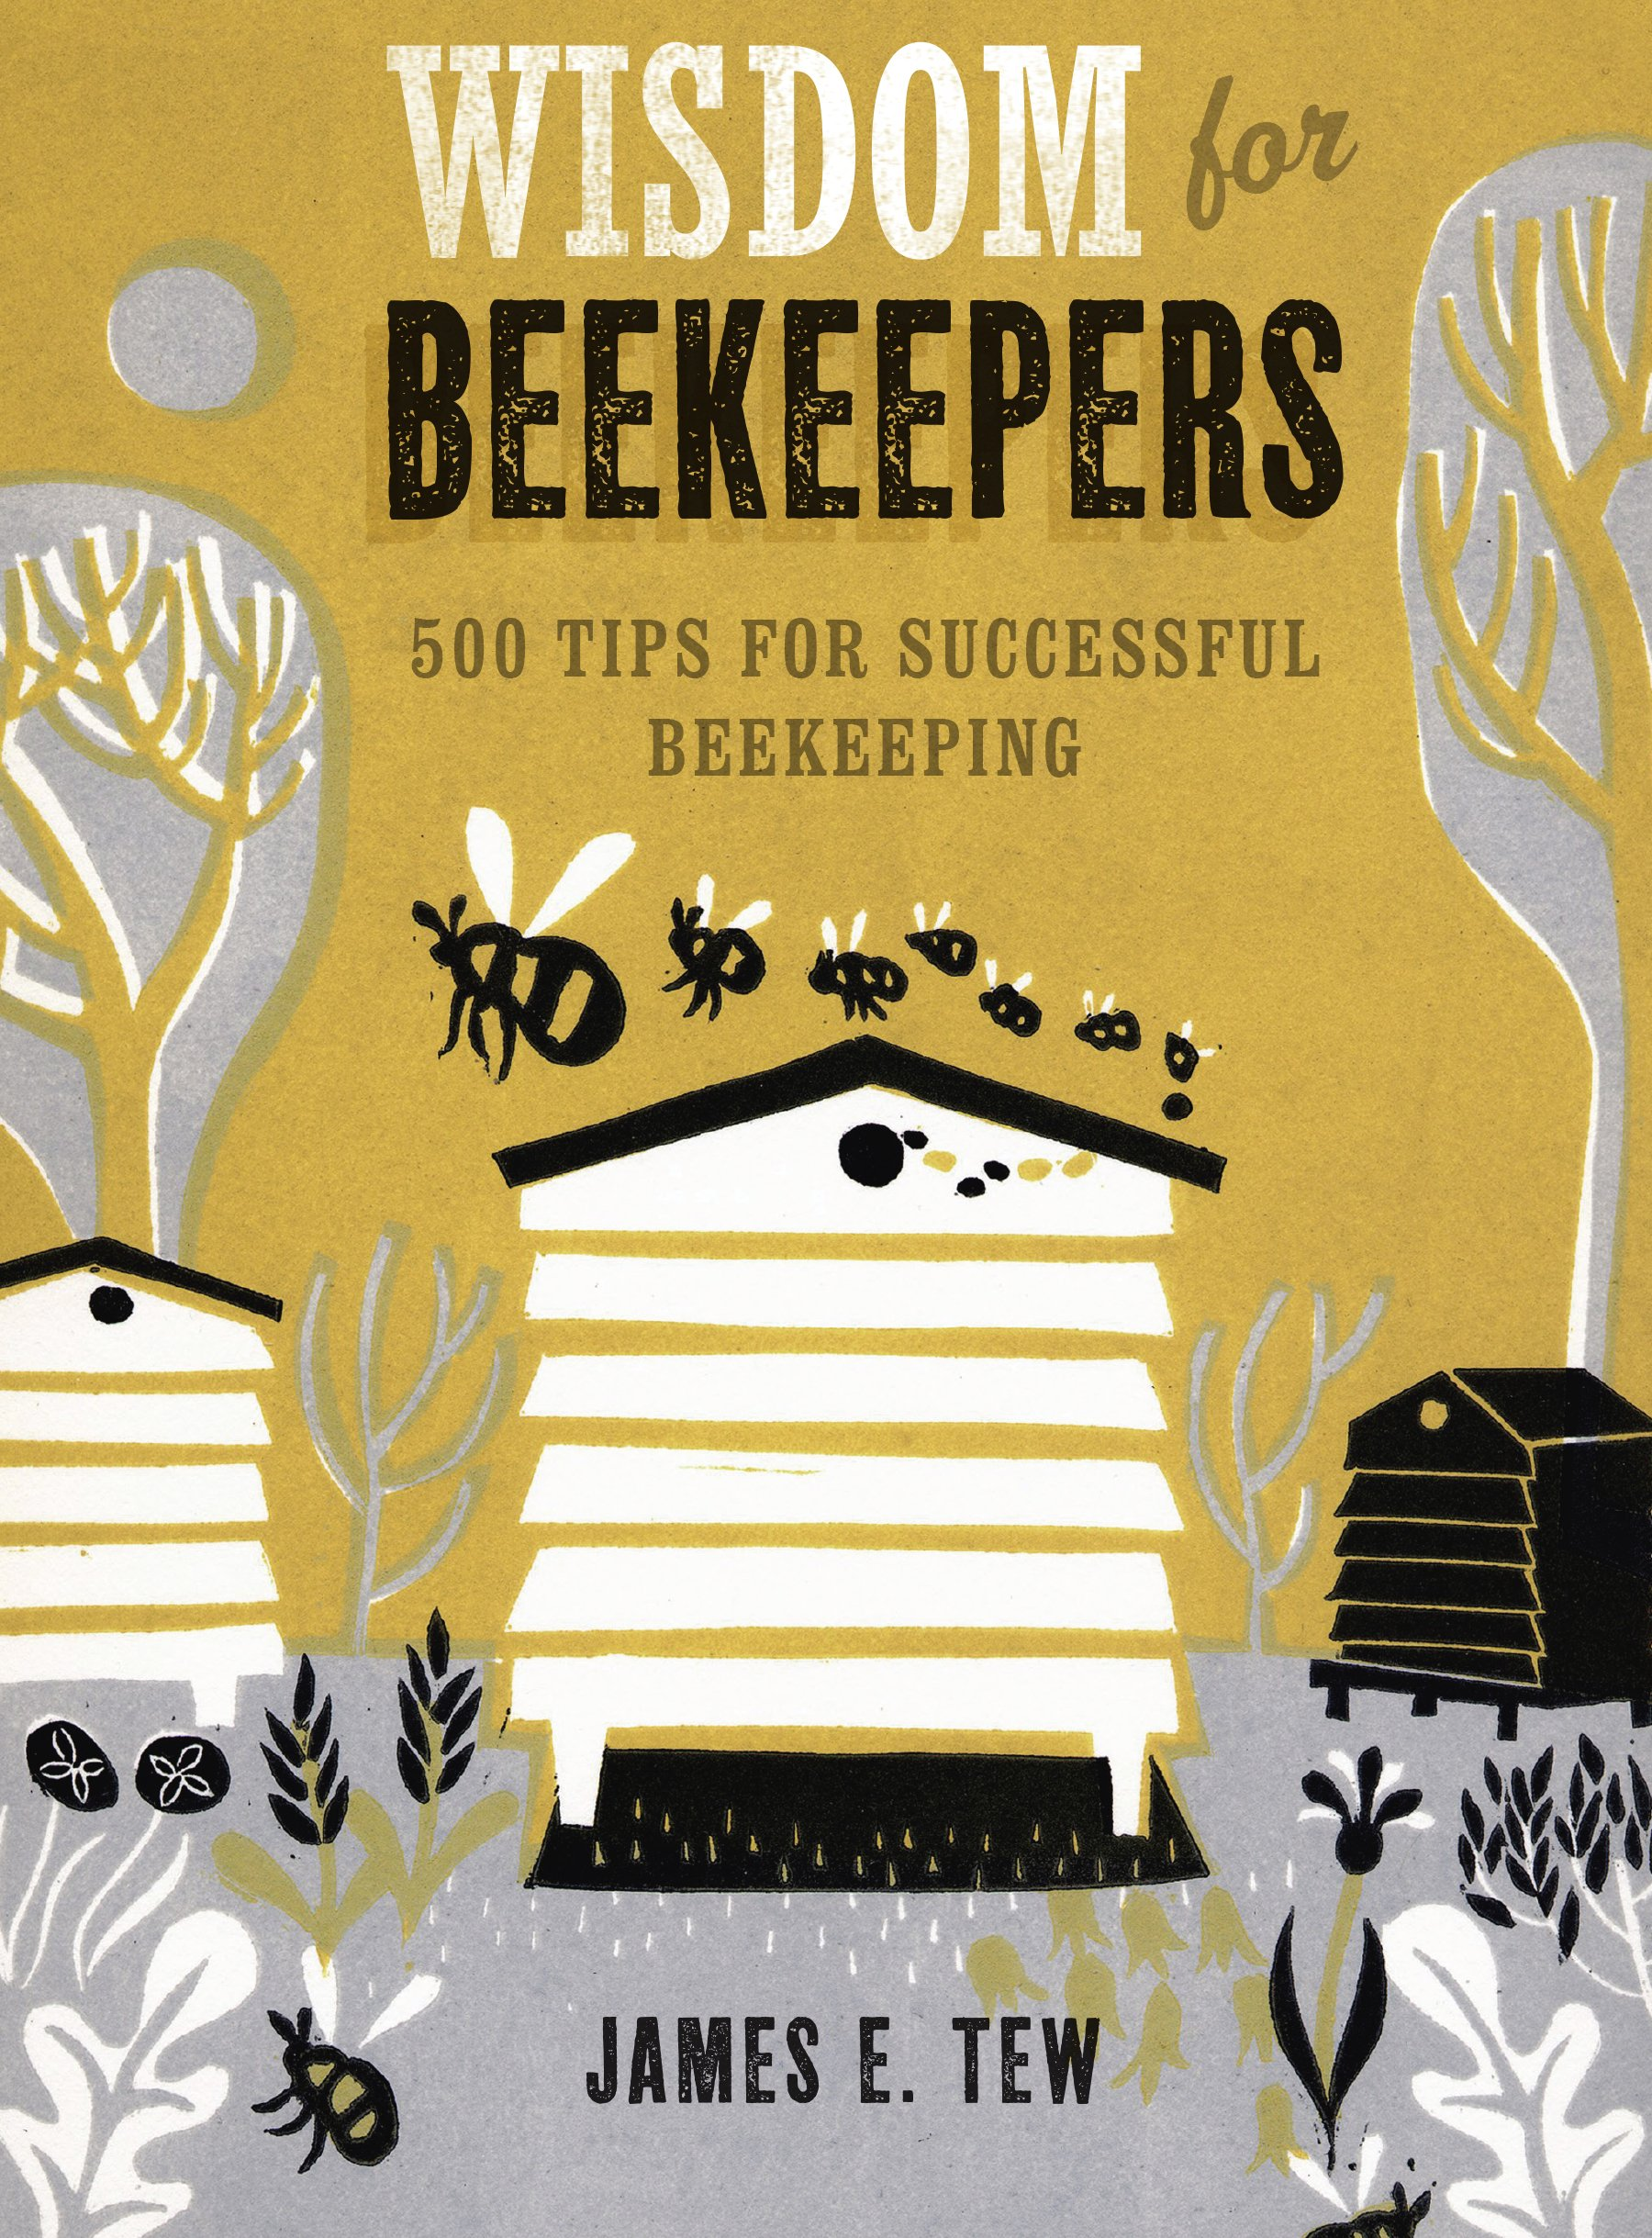 wisdom for beekeepers 500 tips for successful beekeeping james e